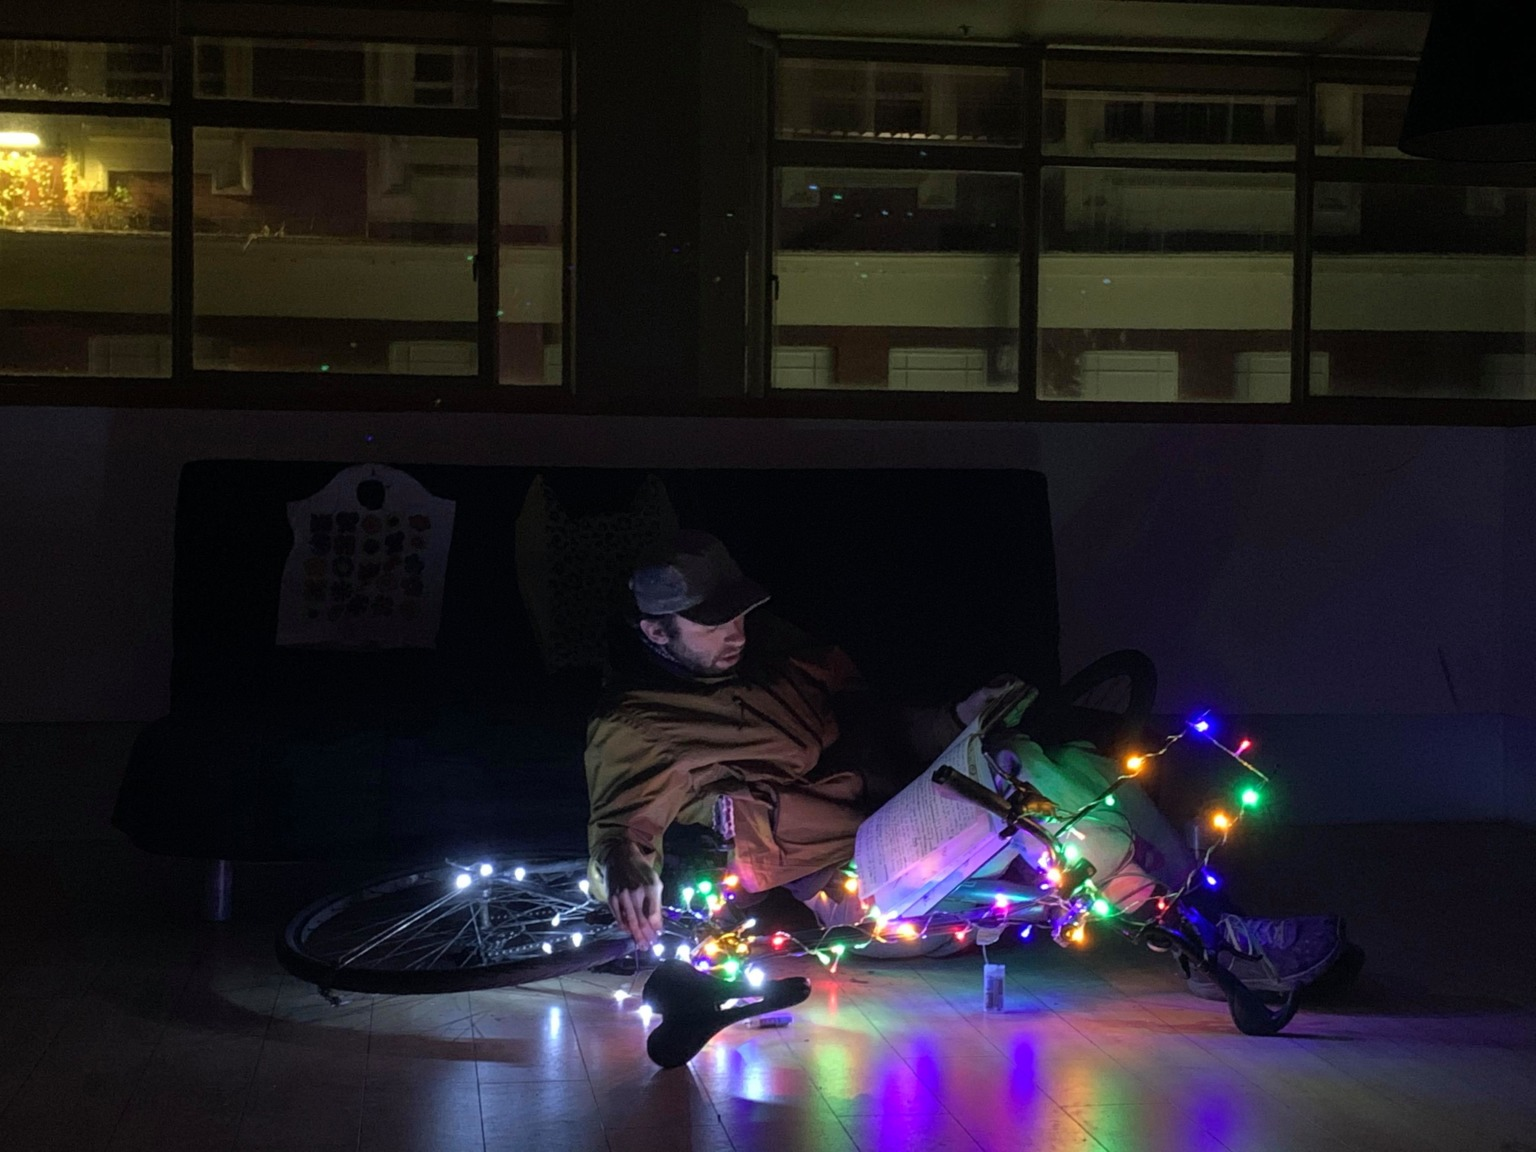 A figure who is tangled within the frame of a bicycle reads from a large notebook on the floor of a darkened space. The bicycle is festooned with decorative lights.